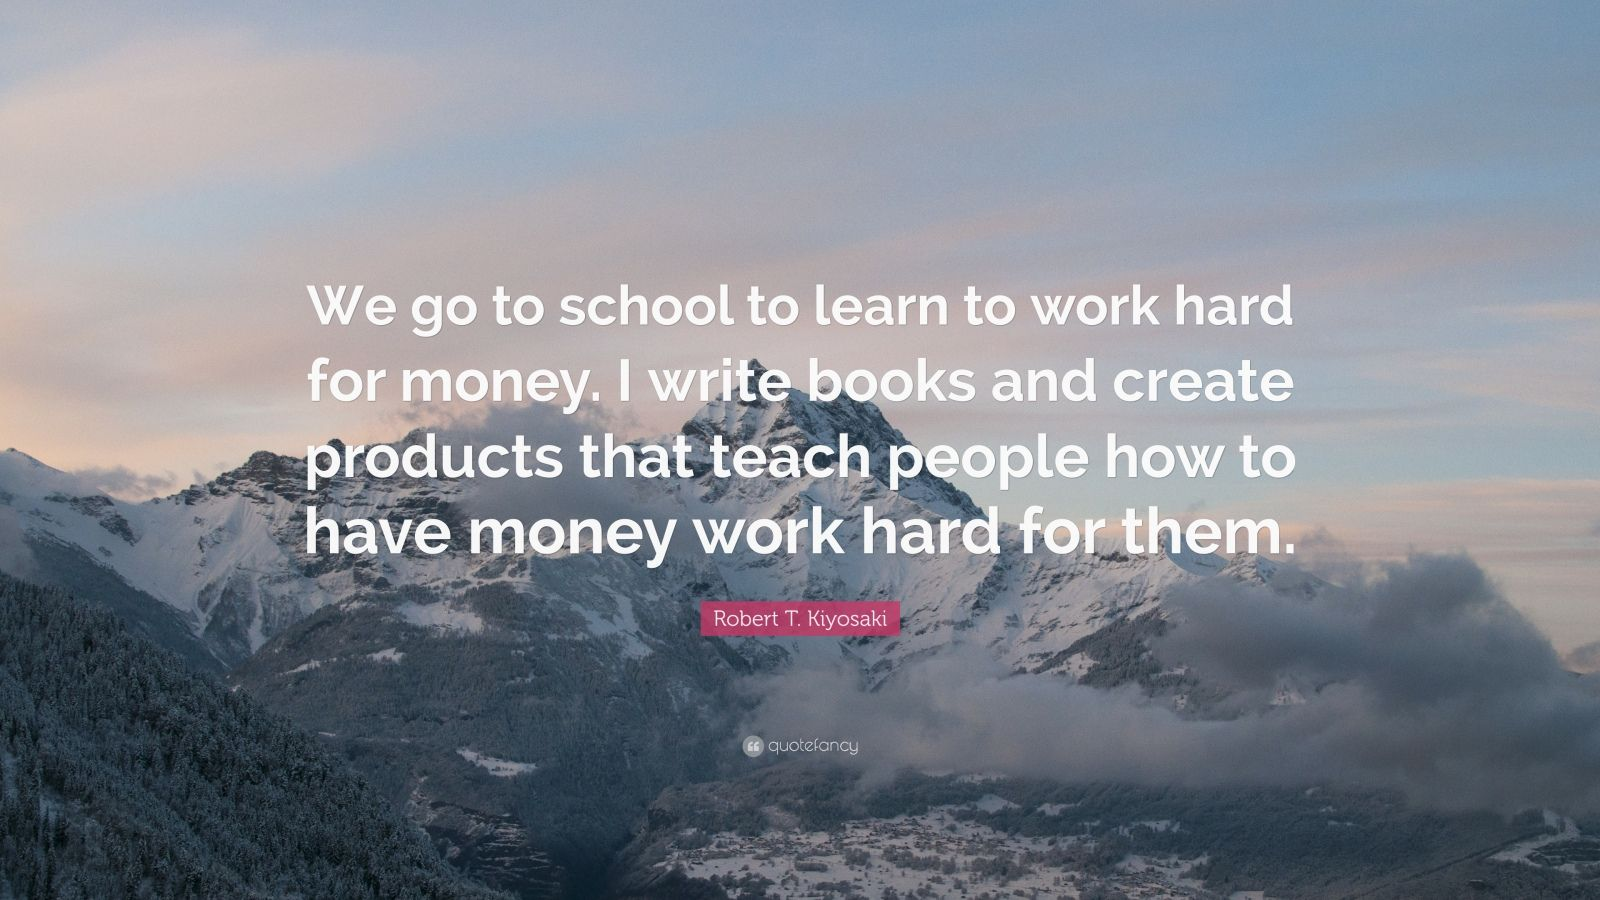 "Robert T. Kiyosaki Quote: ""We go to school to learn to work hard for money. I write books and create products that teach people how to have money work hard for them."""